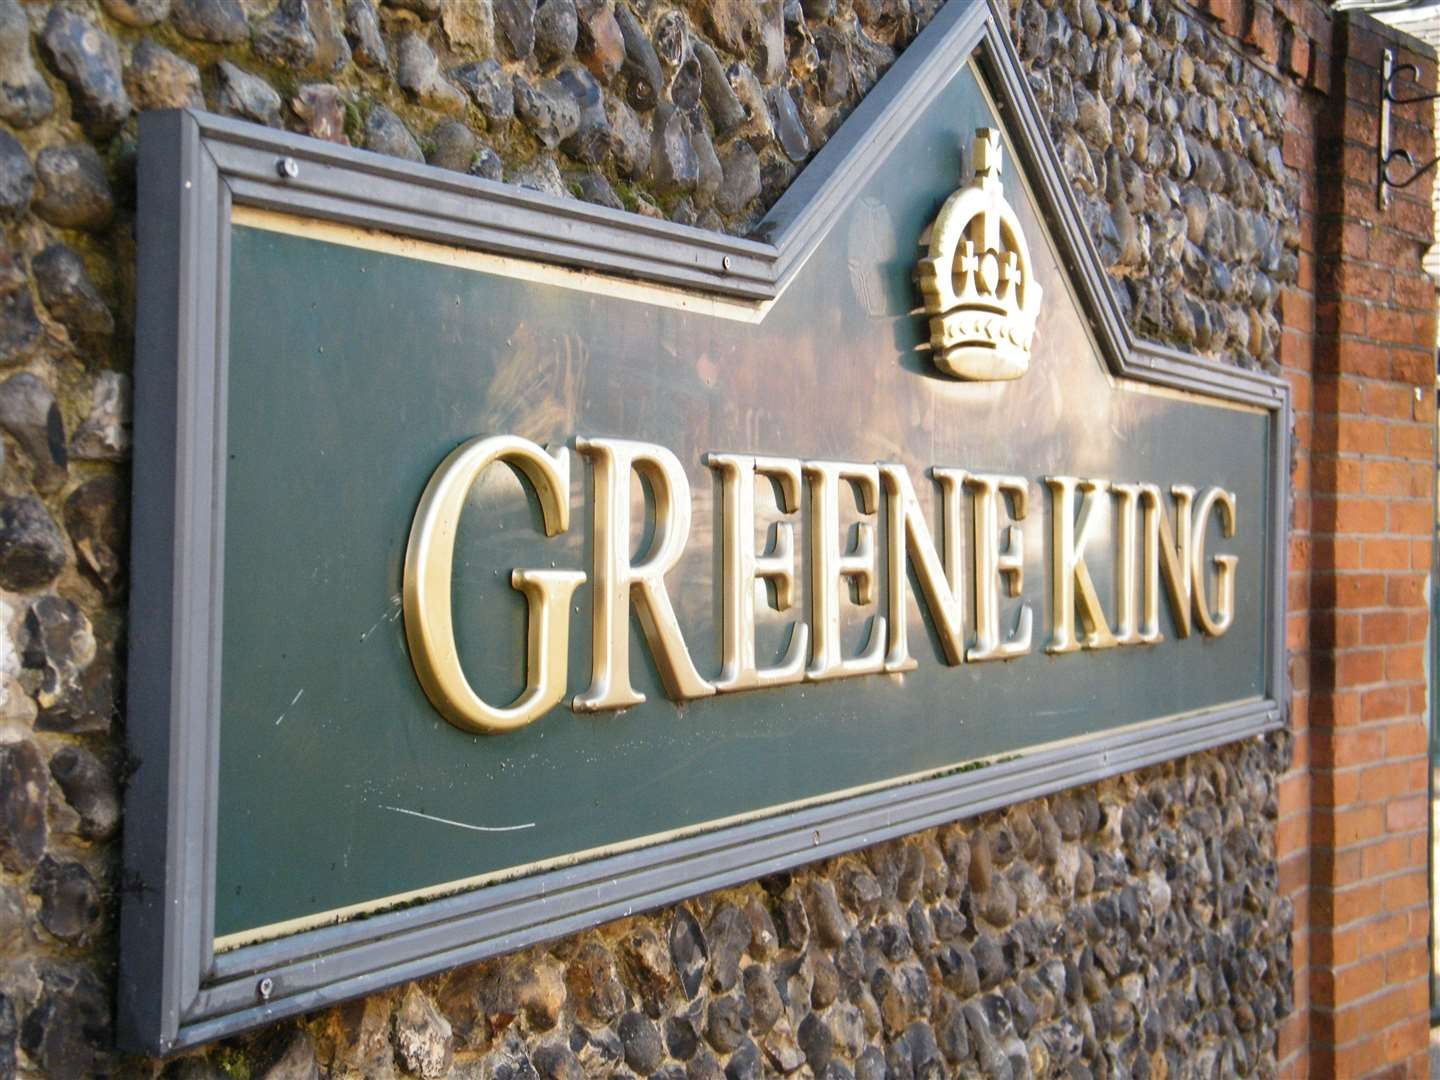 Nick Mackenzie, chief executive of Greene King, has said it is 'critical' pubs can reopen on June 21 without any restrictions in place.